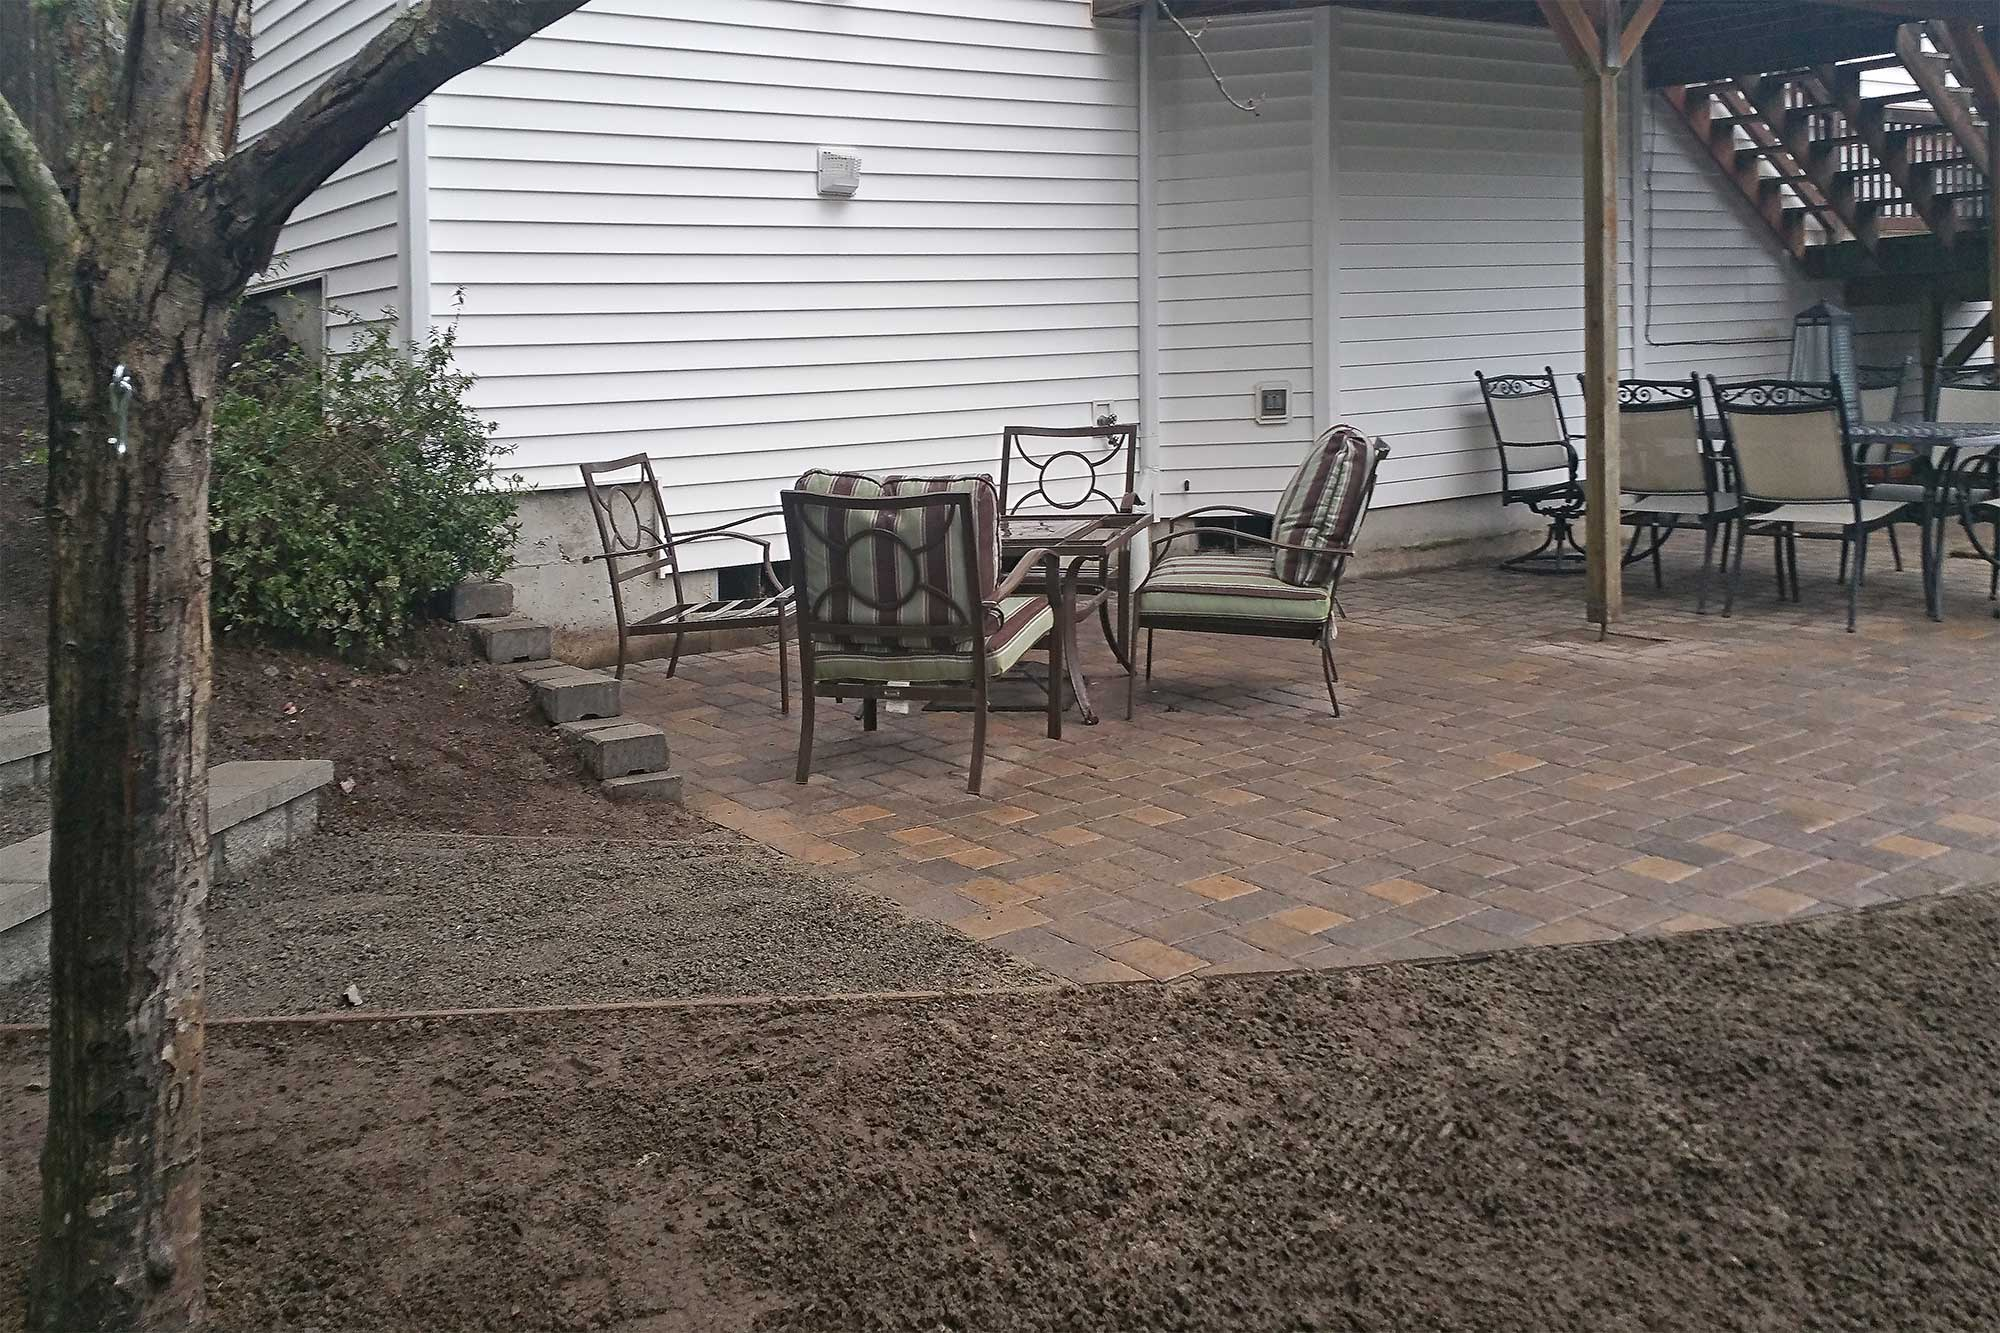 AJB Landscaping & Fence removed a deteriorating concrete slab and replaced it with this beautiful paver patio make with Western Interlock, Slimline pavers.